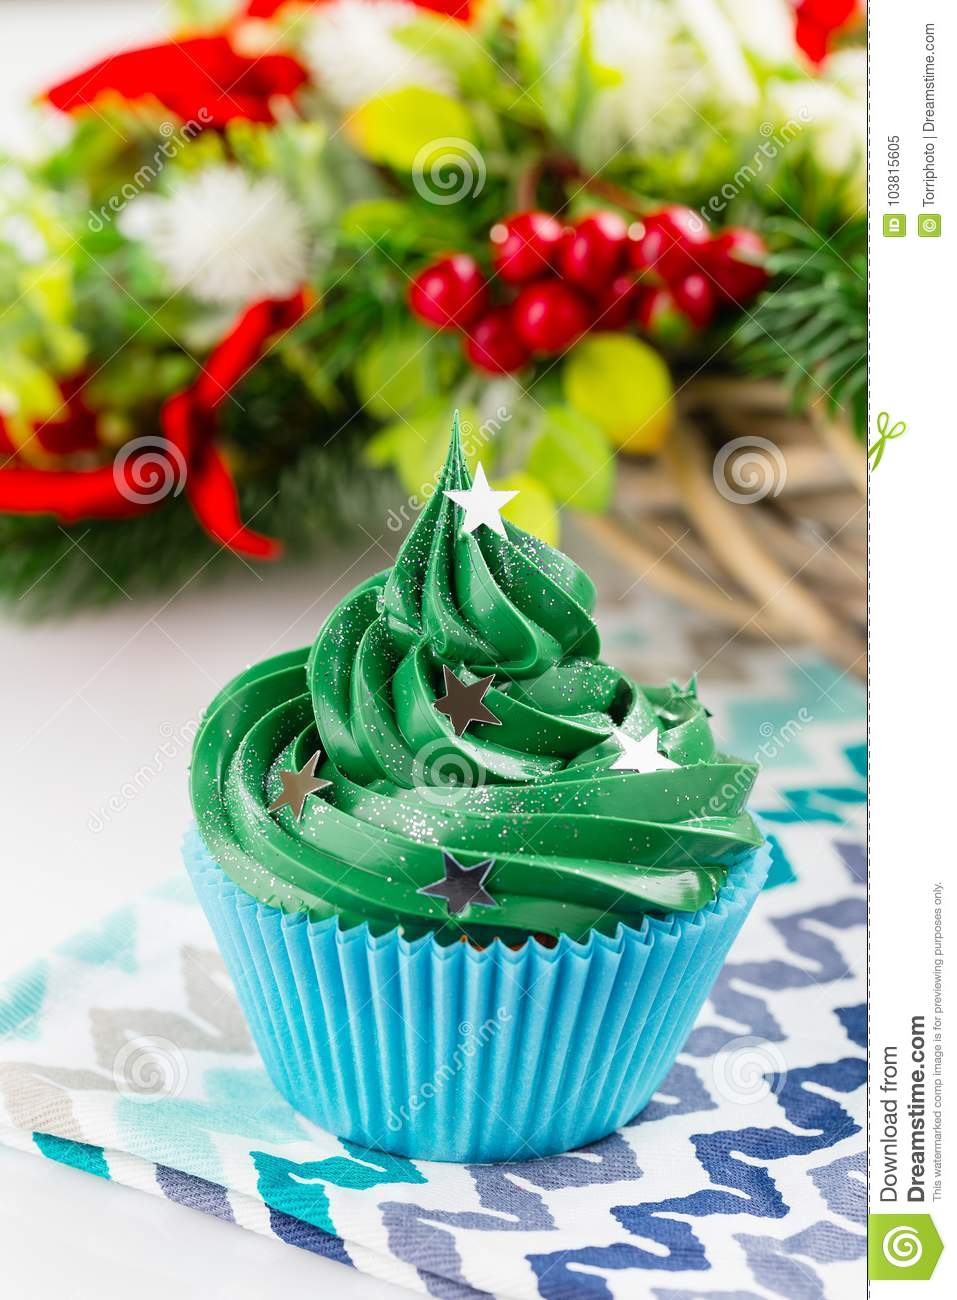 christmas green cupcake with star sprinkles in blue cup on white background with festive decorations